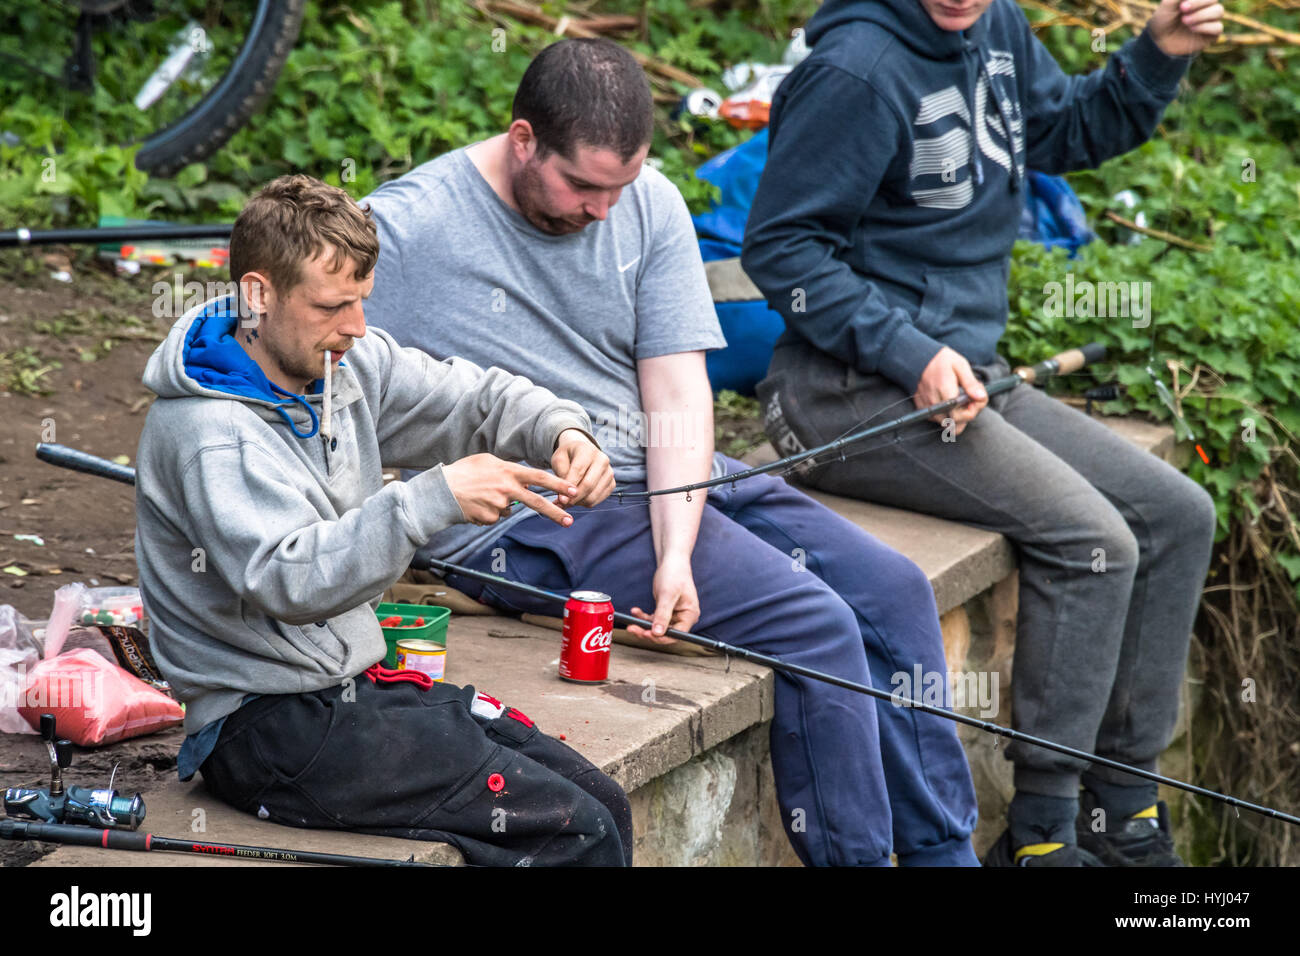 Three men fishing on a river bank whilst one smokes a joint. - Stock Image